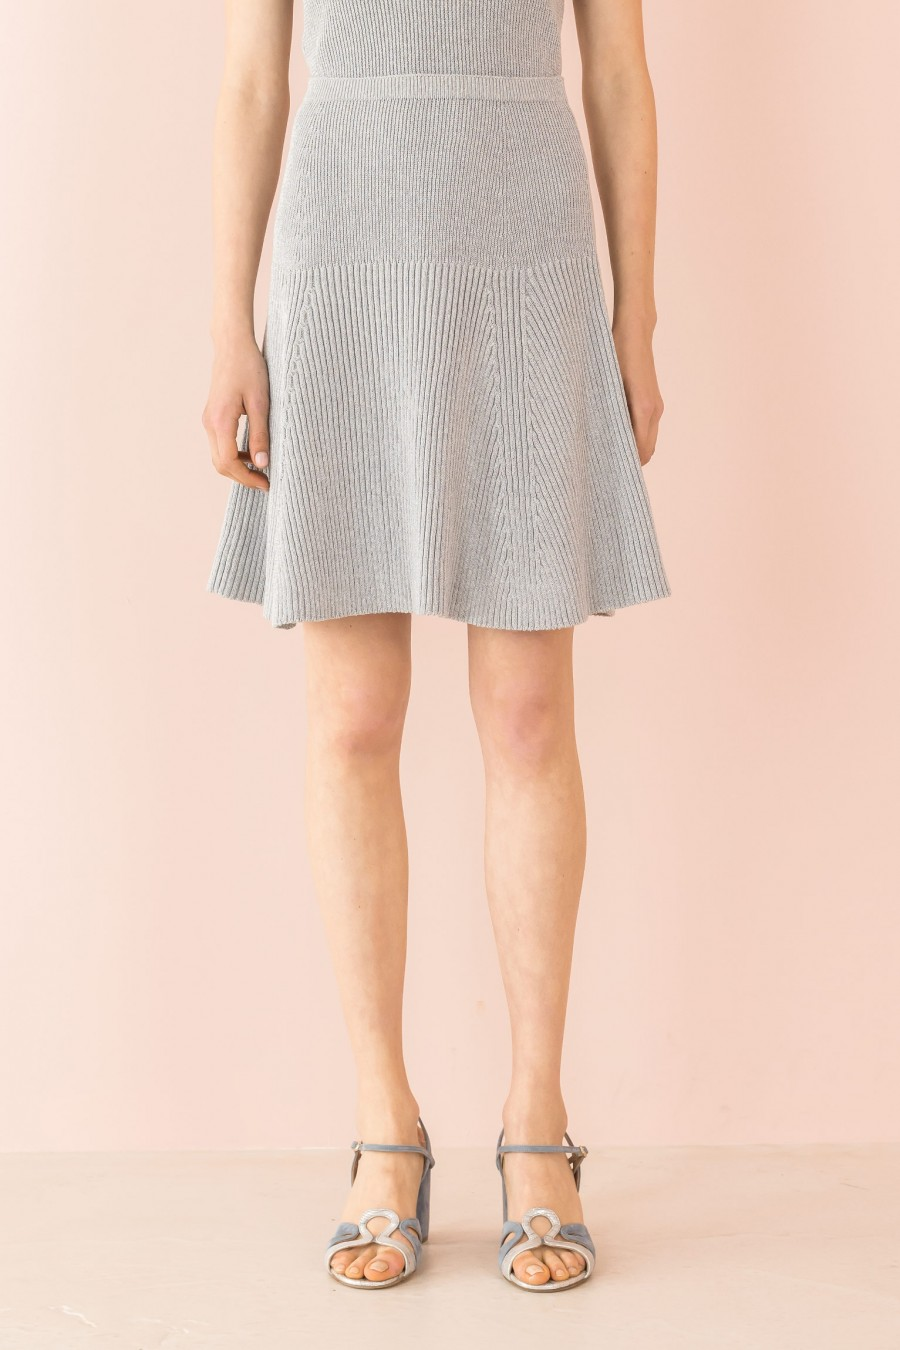 knitted lamè silver skirt